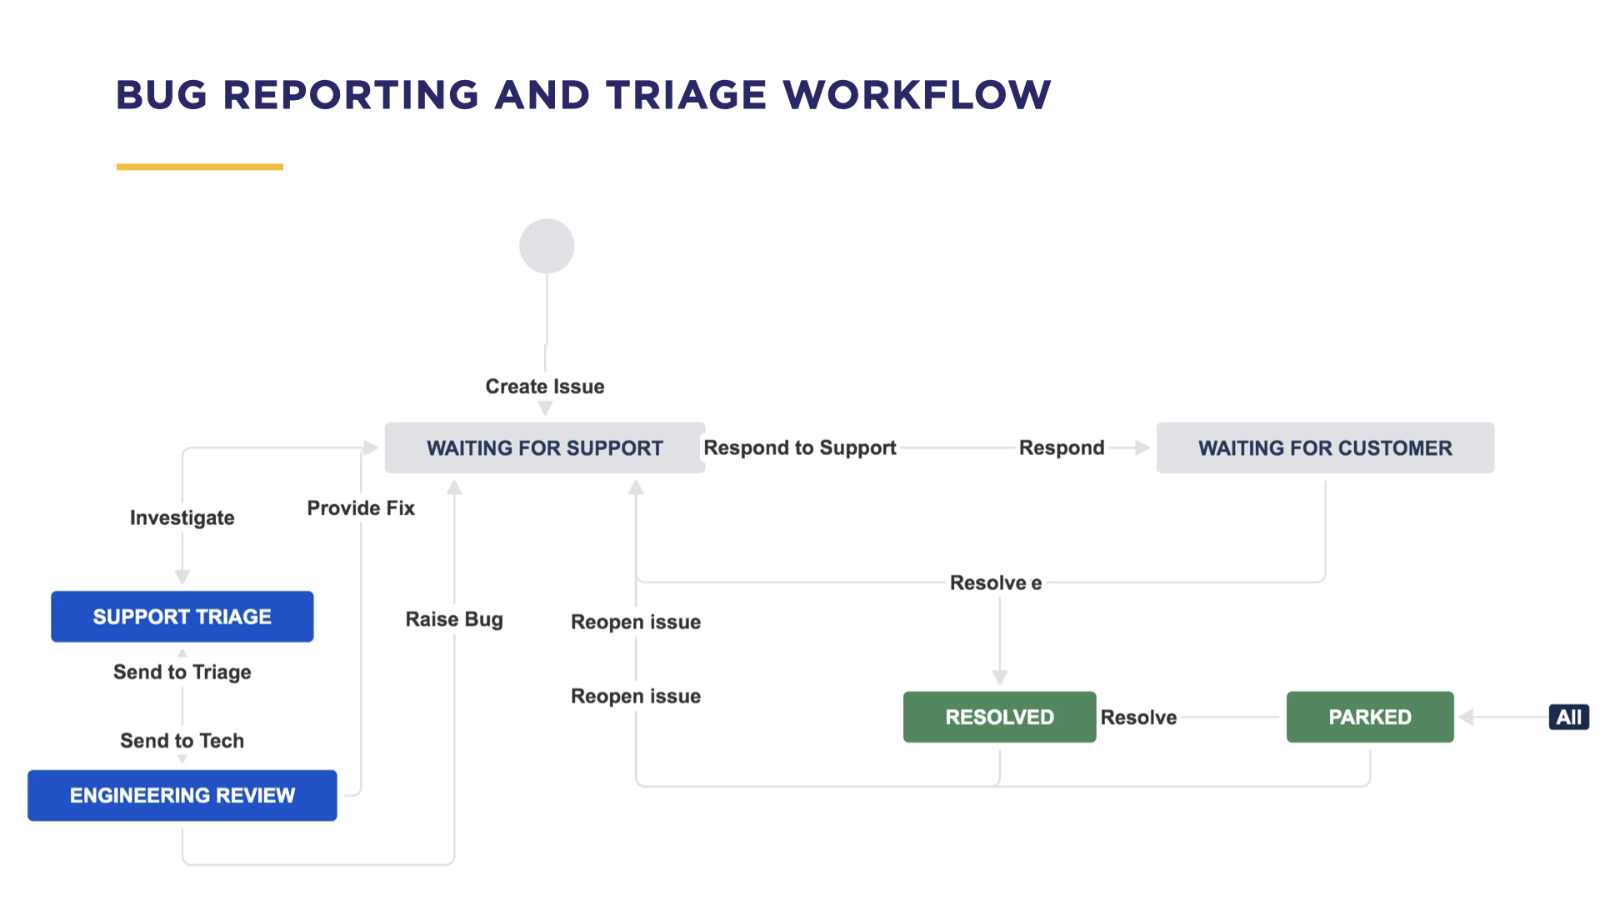 ProForma Support Triage Workflow